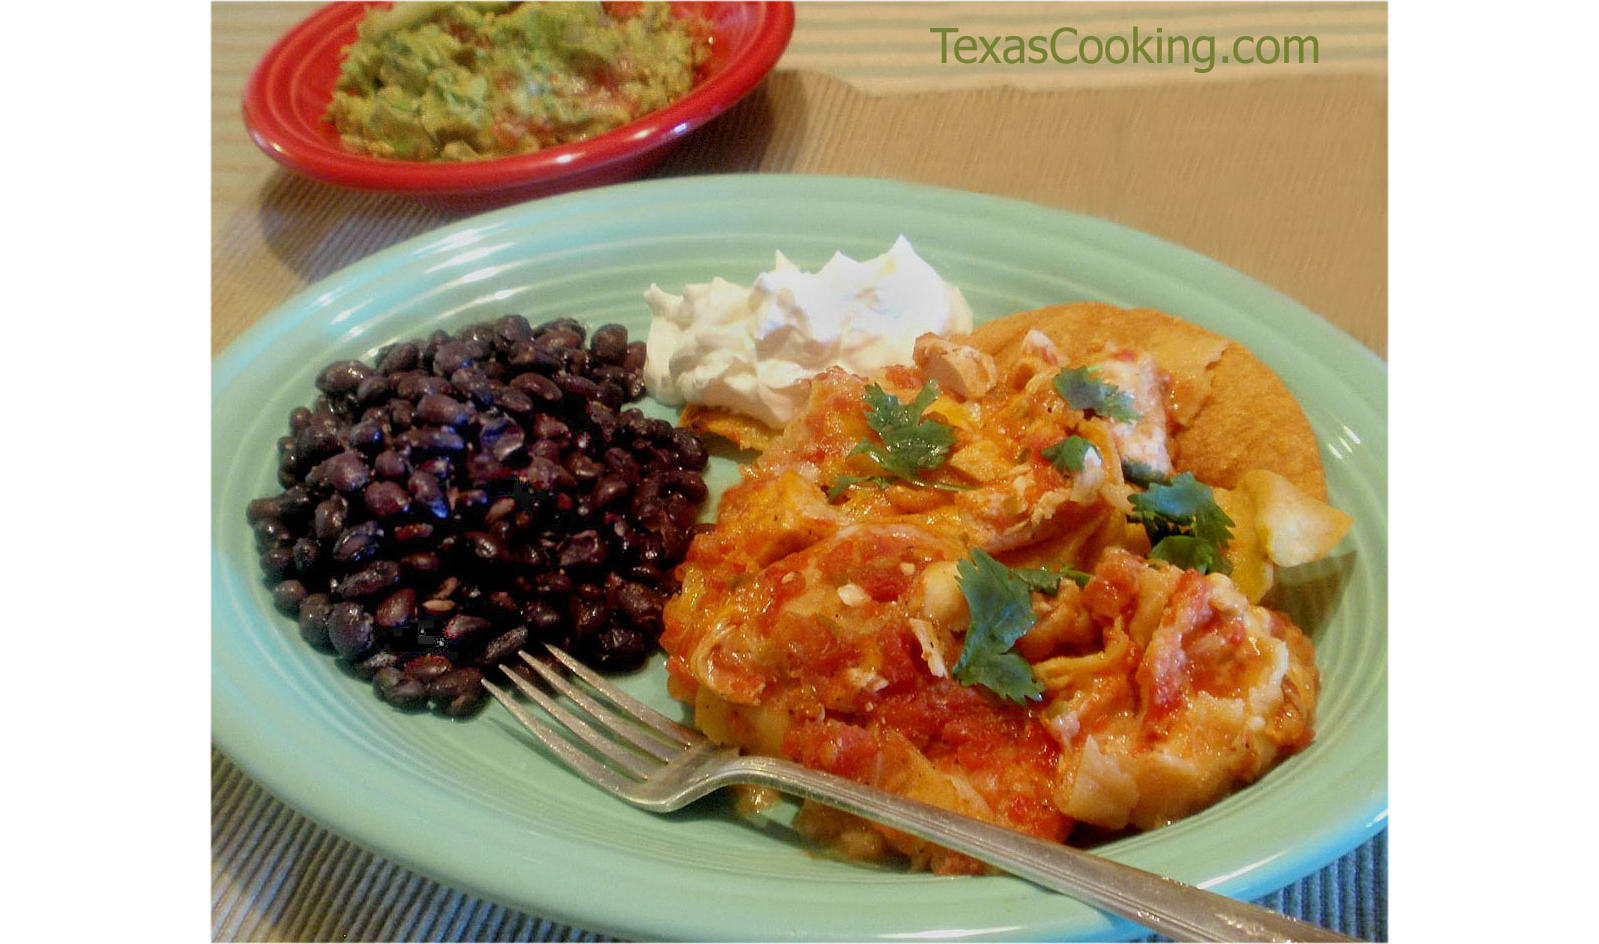 Discussion on this topic: Tex Mex Chilaquiles Recipe, tex-mex-chilaquiles-recipe/